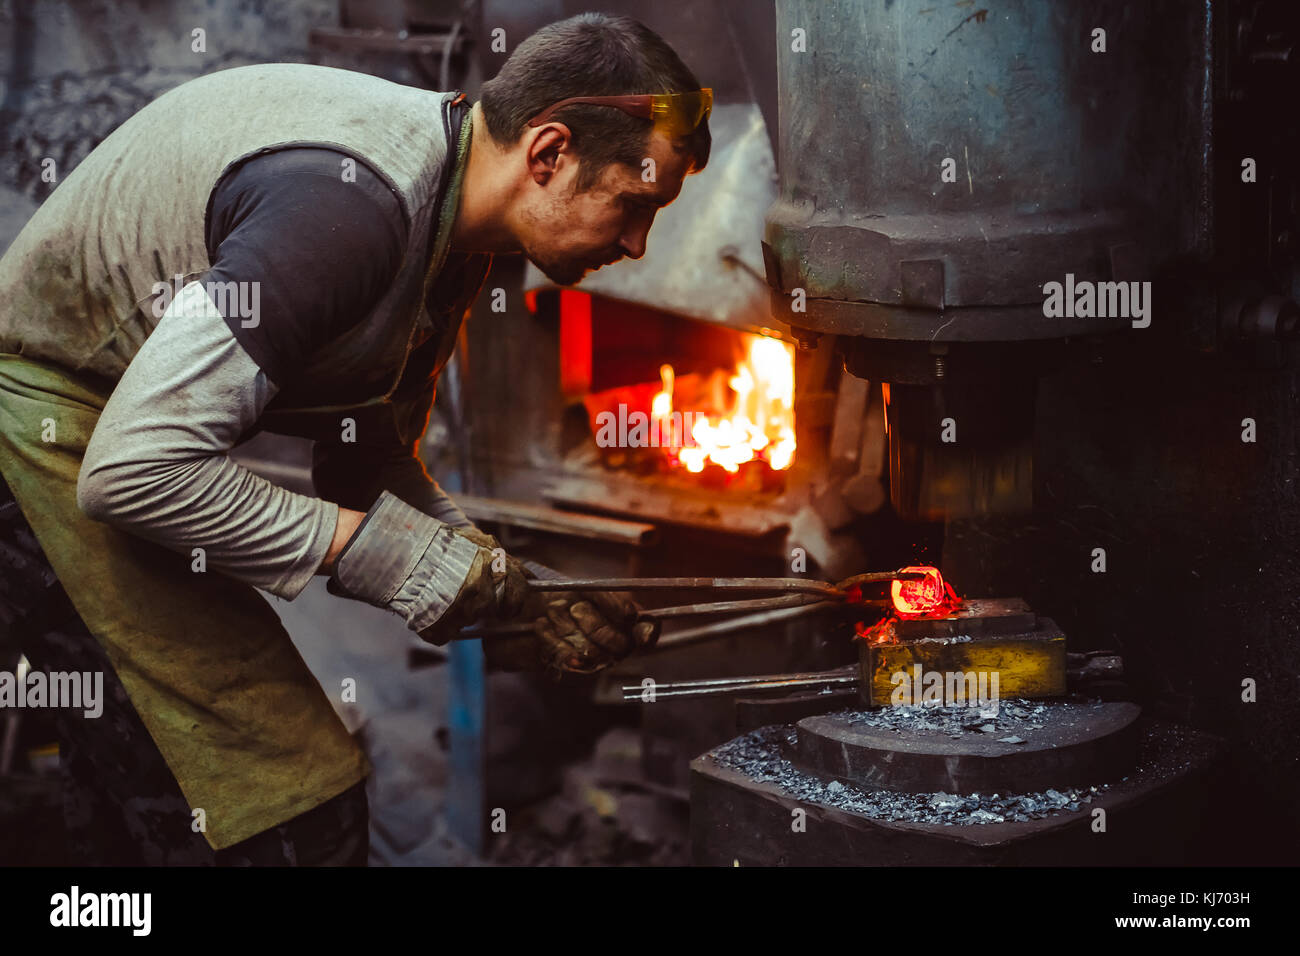 blacksmith working in the forge - Stock Image